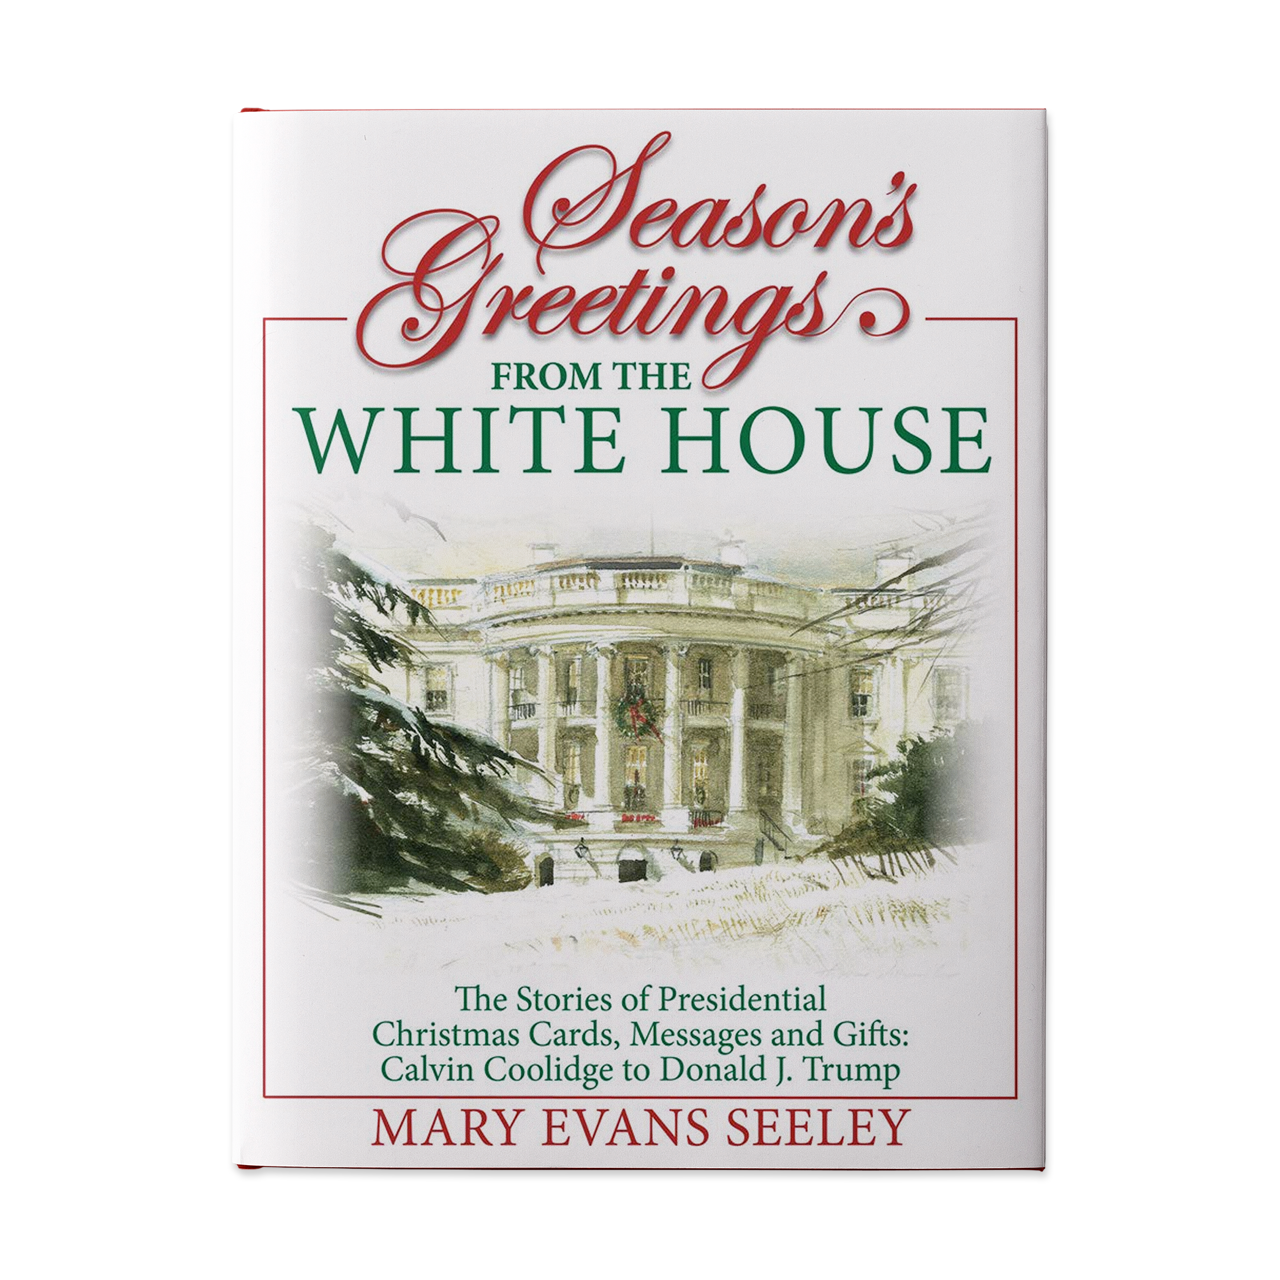 Season's Greetings from the White House